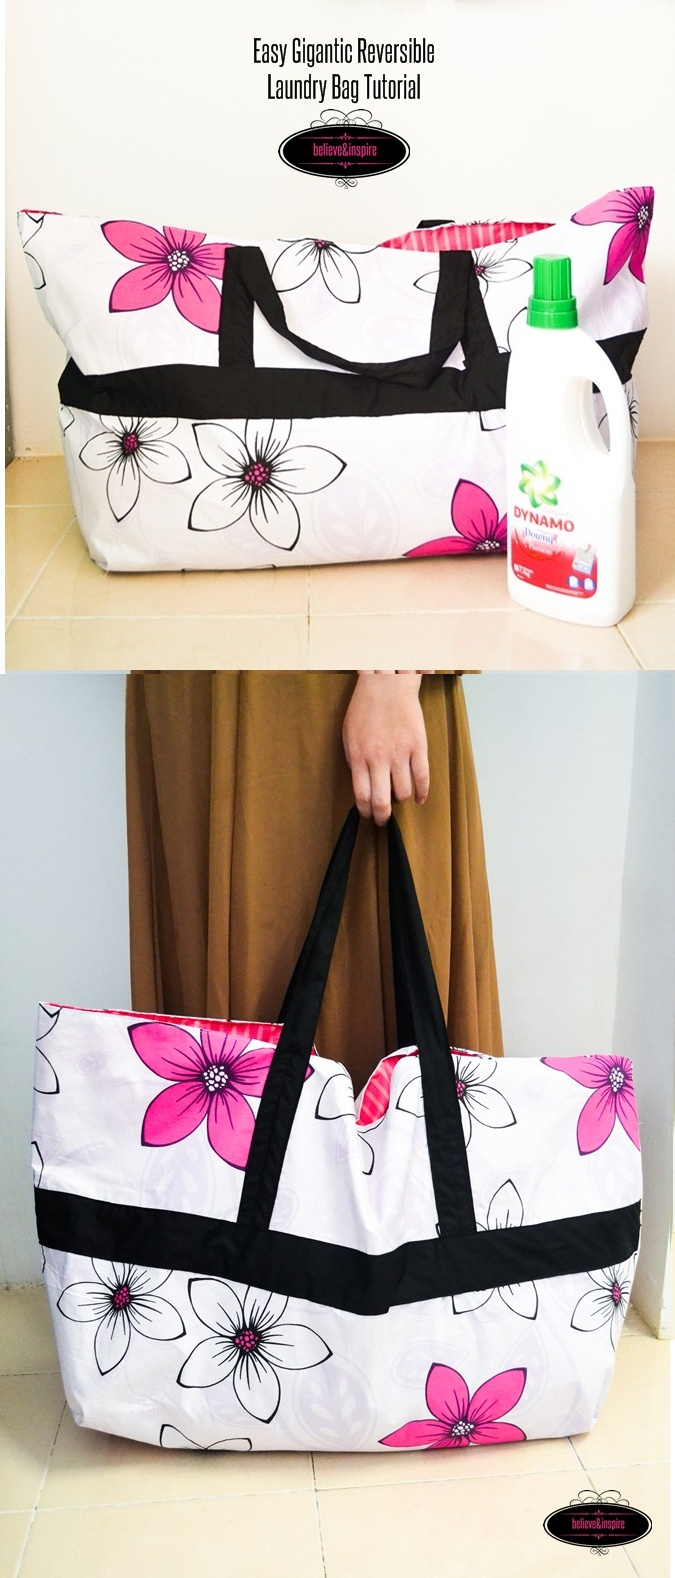 Easy Gigantic Reversible Laundry Bag Tutorial on believeninspire.com